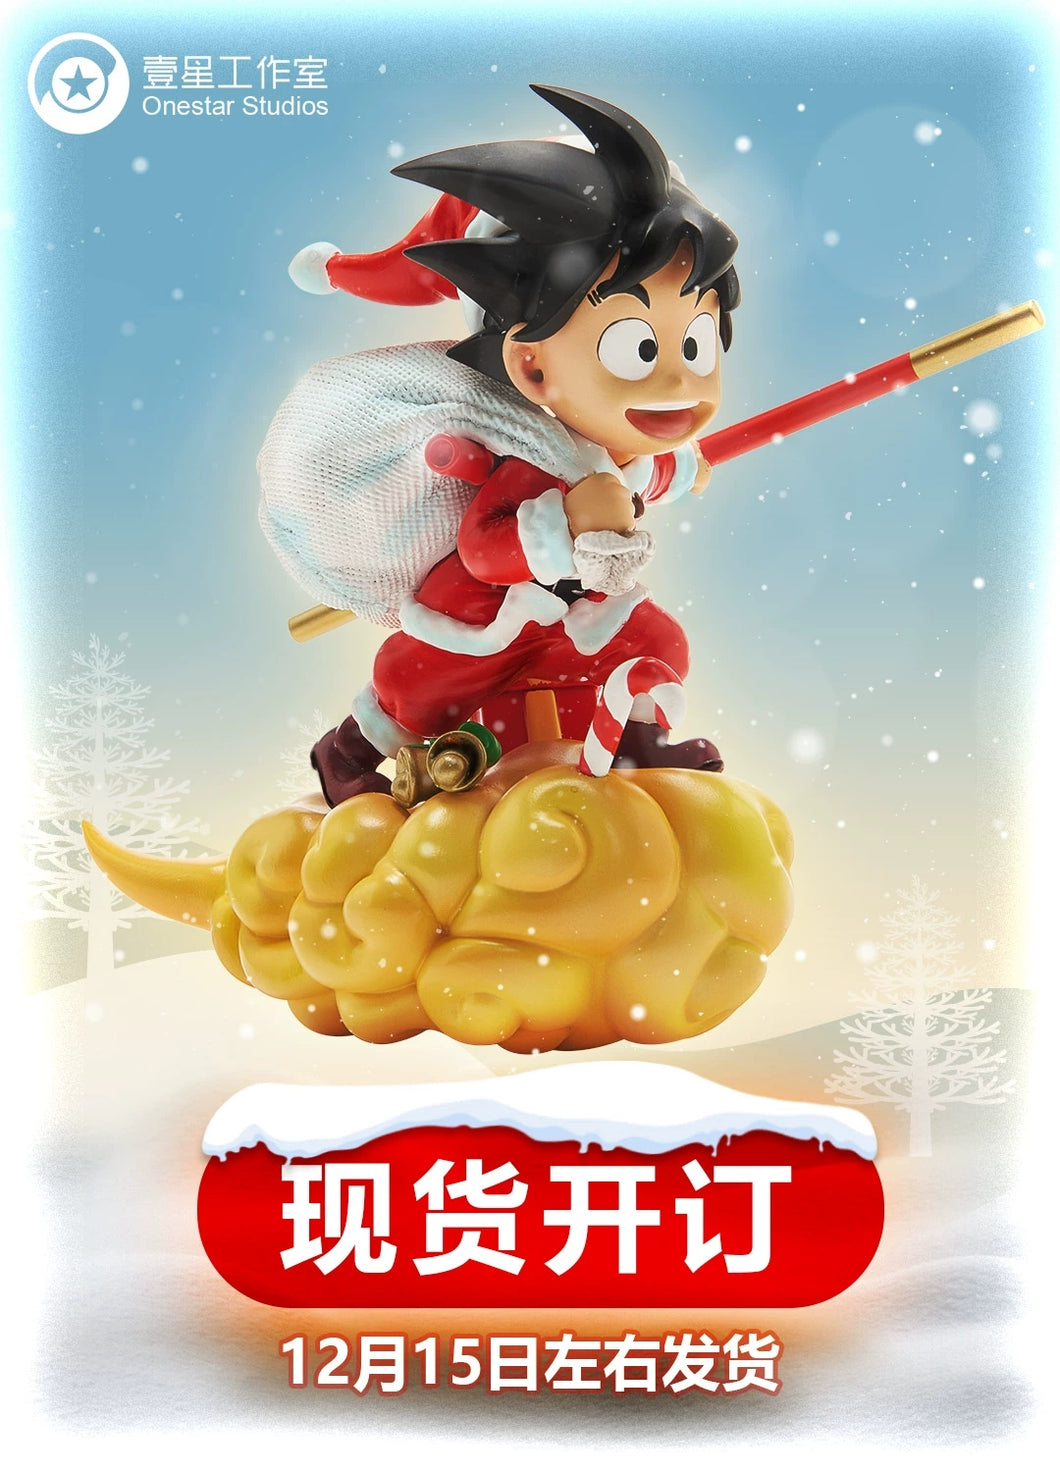 Chirstmas Childhood Goku - Dragon Ball Resin Statue - OneStar Studios [In Stock] - FavorGK